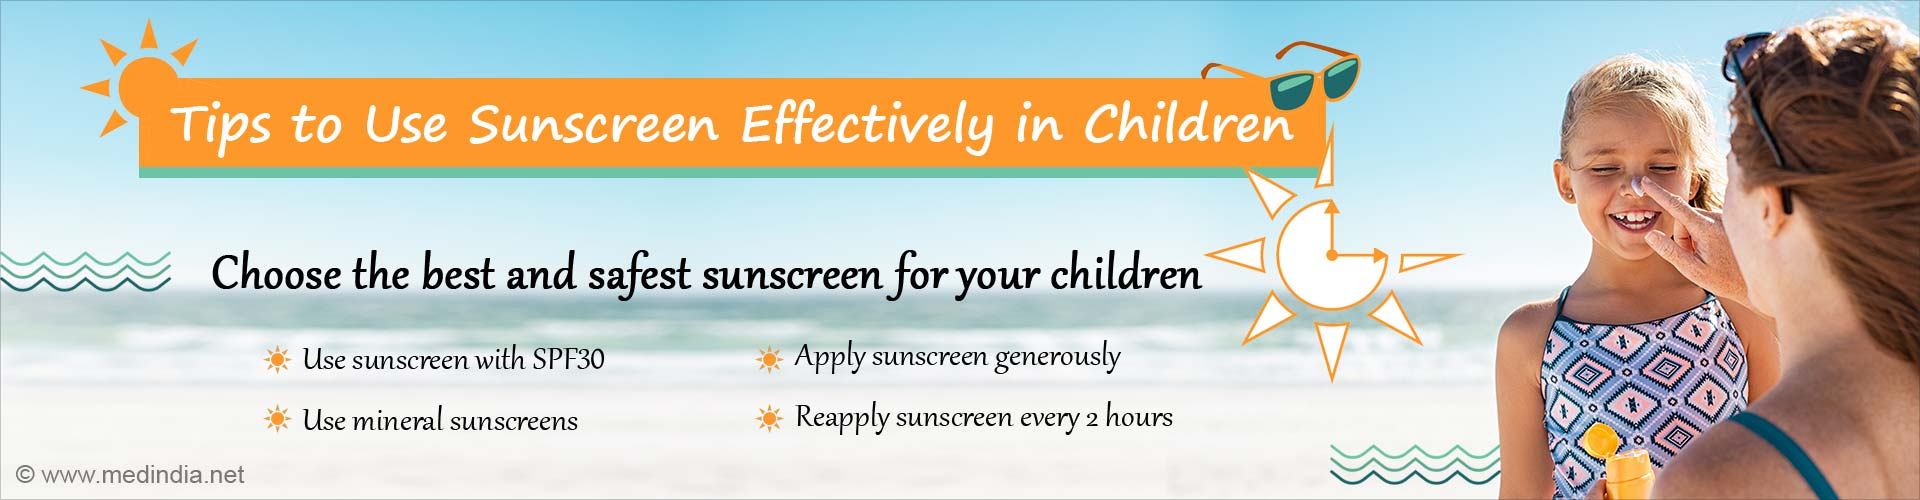 Tips to Use Sunscreen Effectively in Children